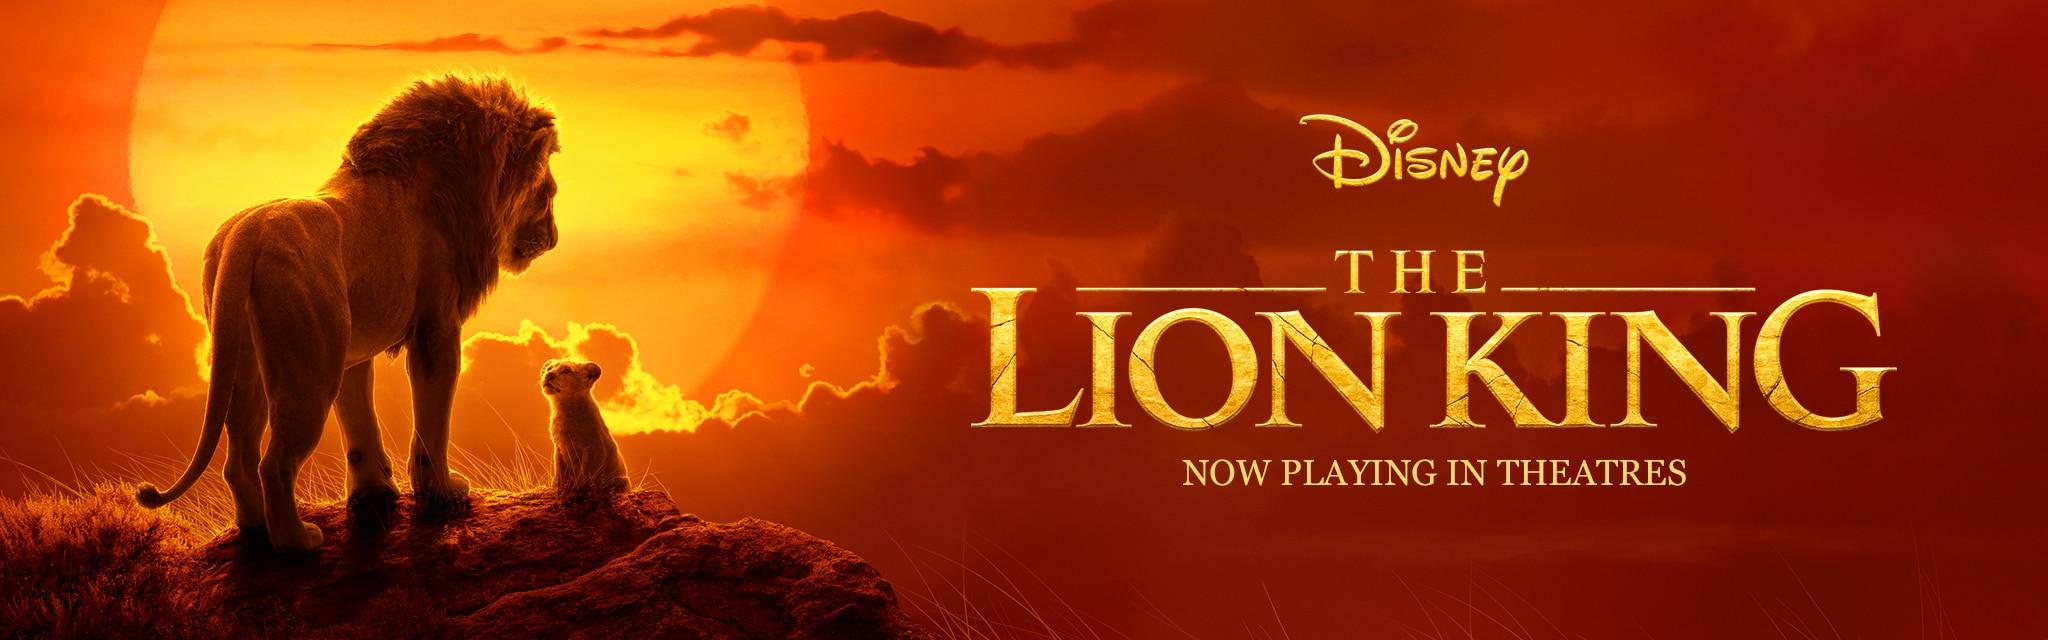 The Lion King Now Playing In Theatres